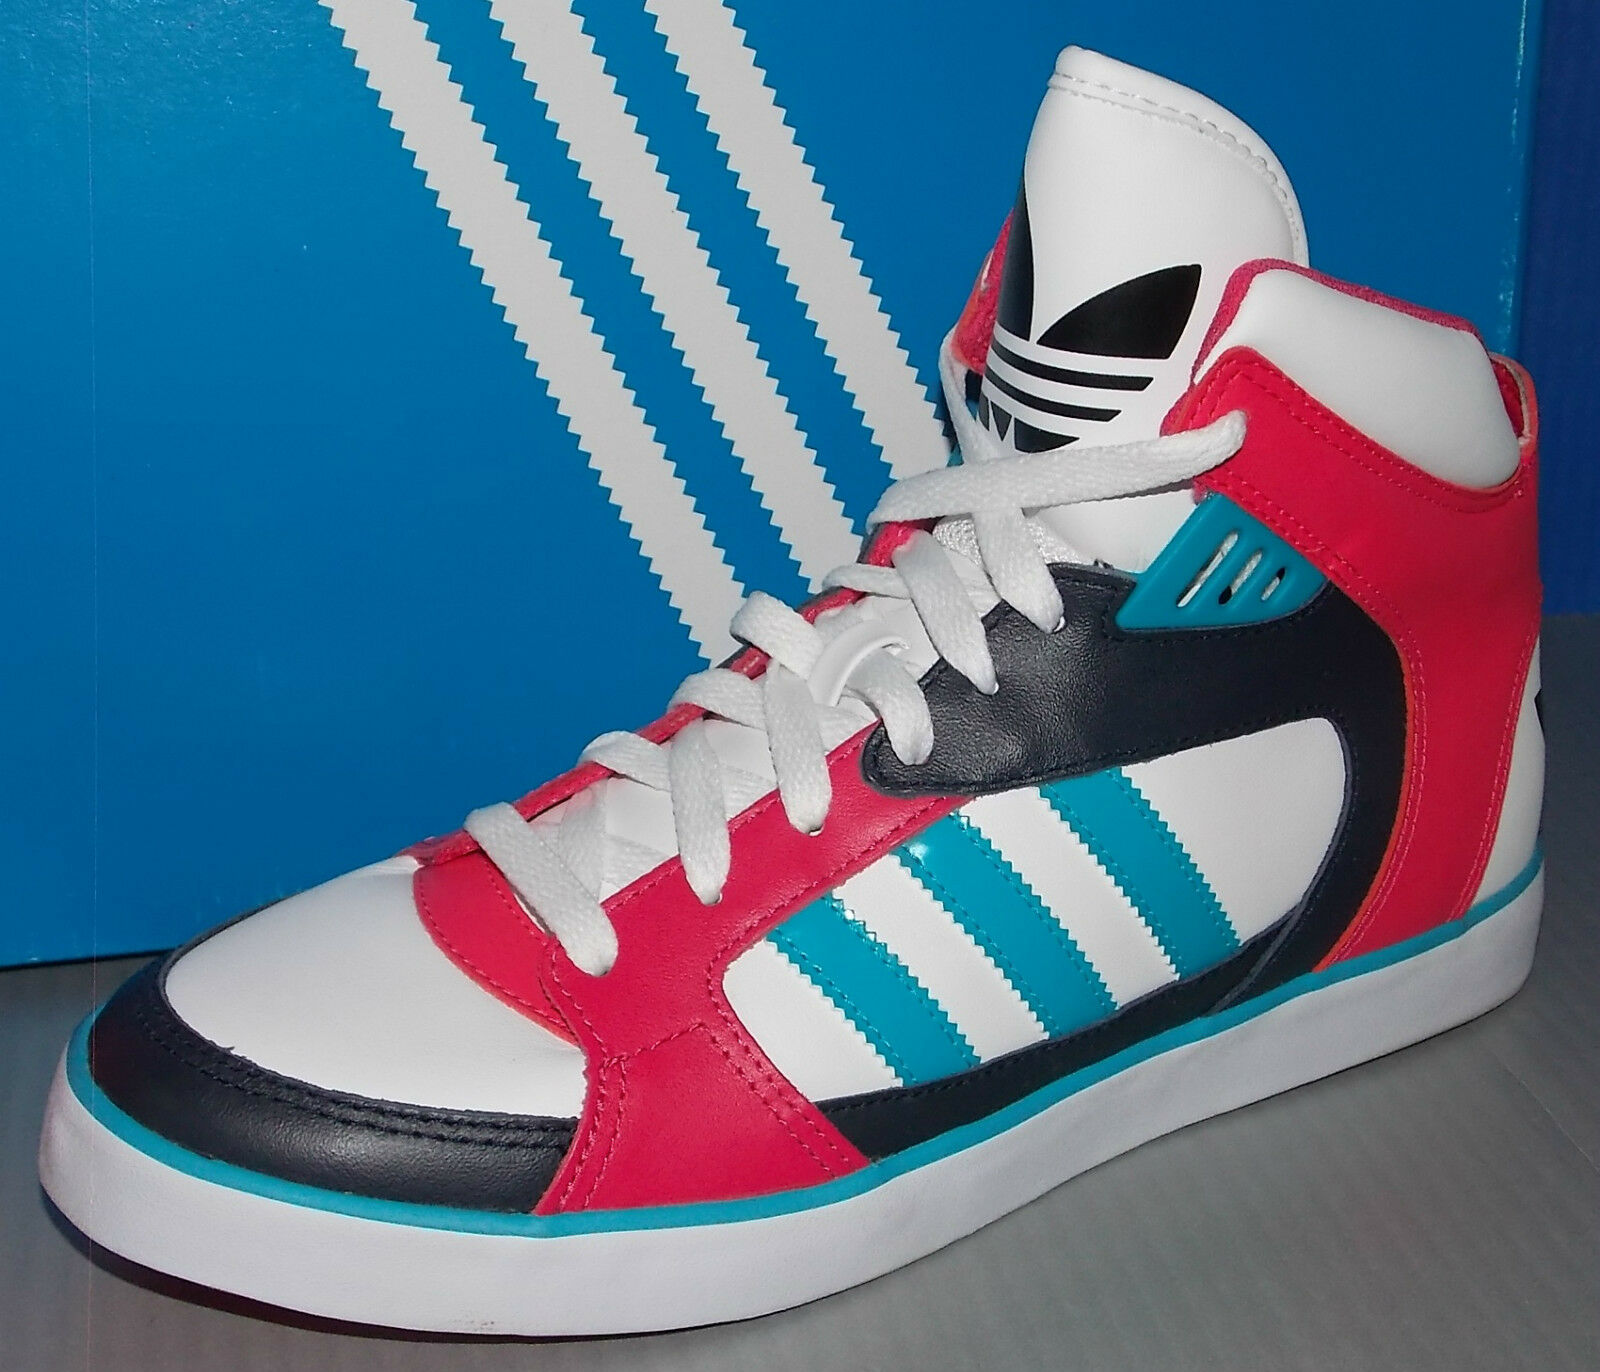 WOMENS ADIDAS AMBERLIGHT W in colors WHITE / TURQUOISE / LEG INK SIZE 6